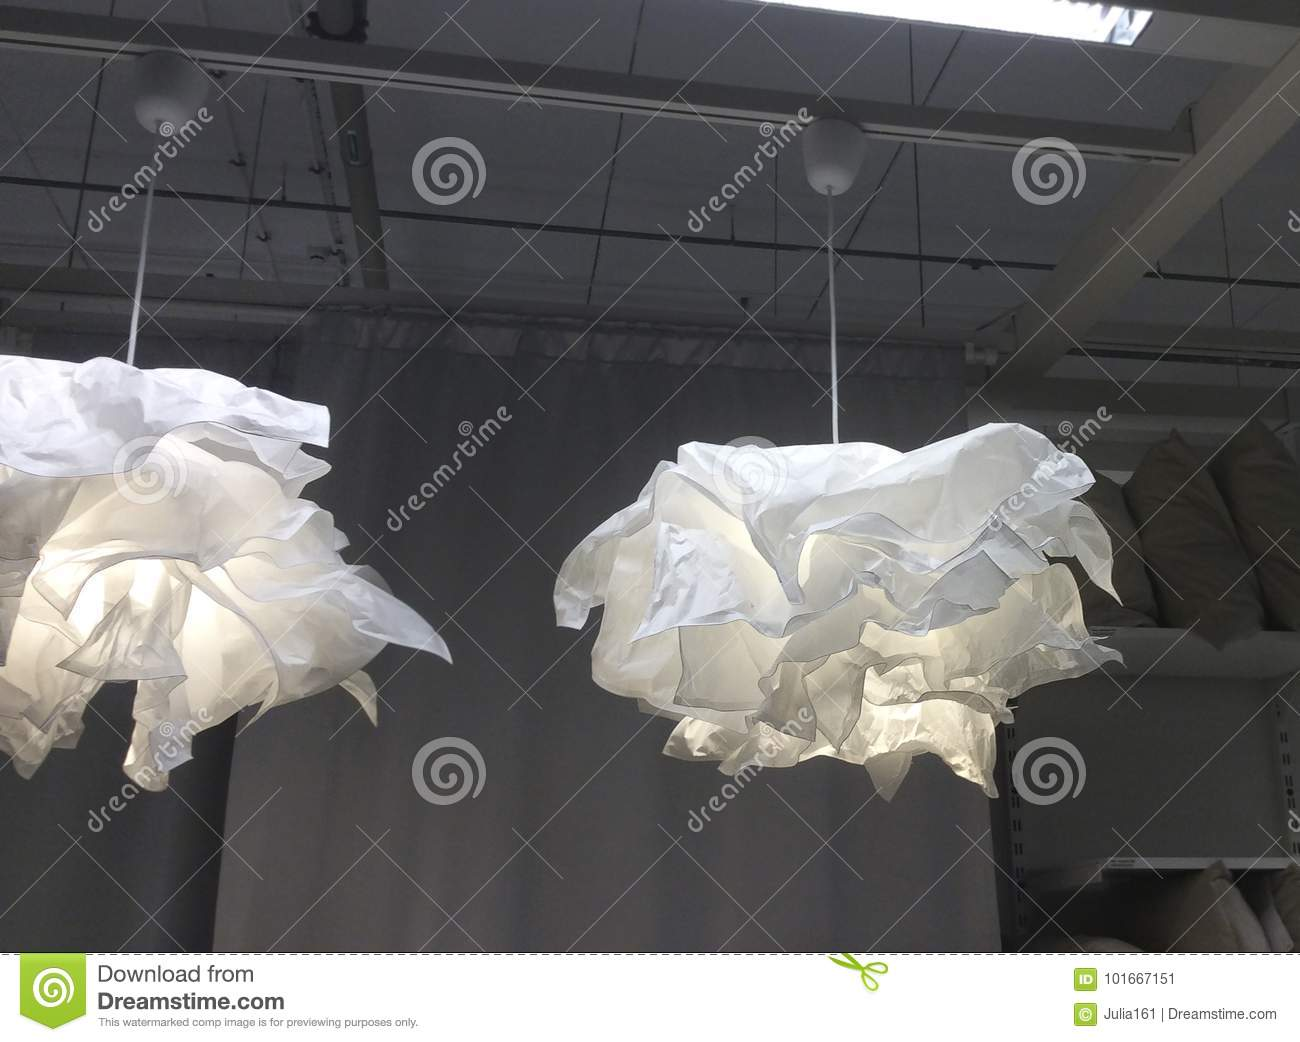 Paper Chandeliers In Ikea Shop Editorial Photo Image Of Russia